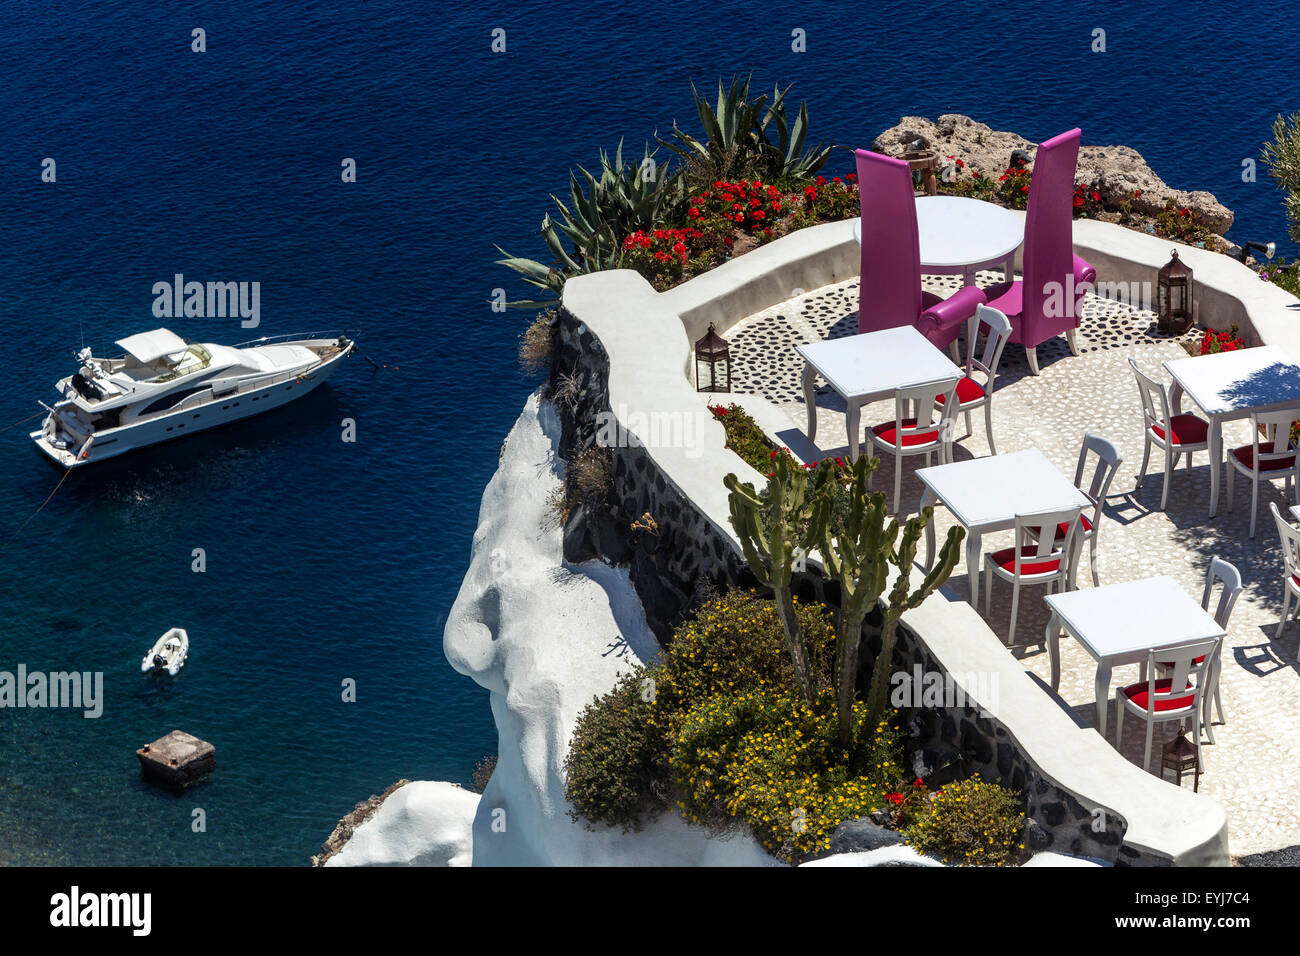 Luxury place sea view,restaurant bar cafe, Oia, Santorini, Greek ...